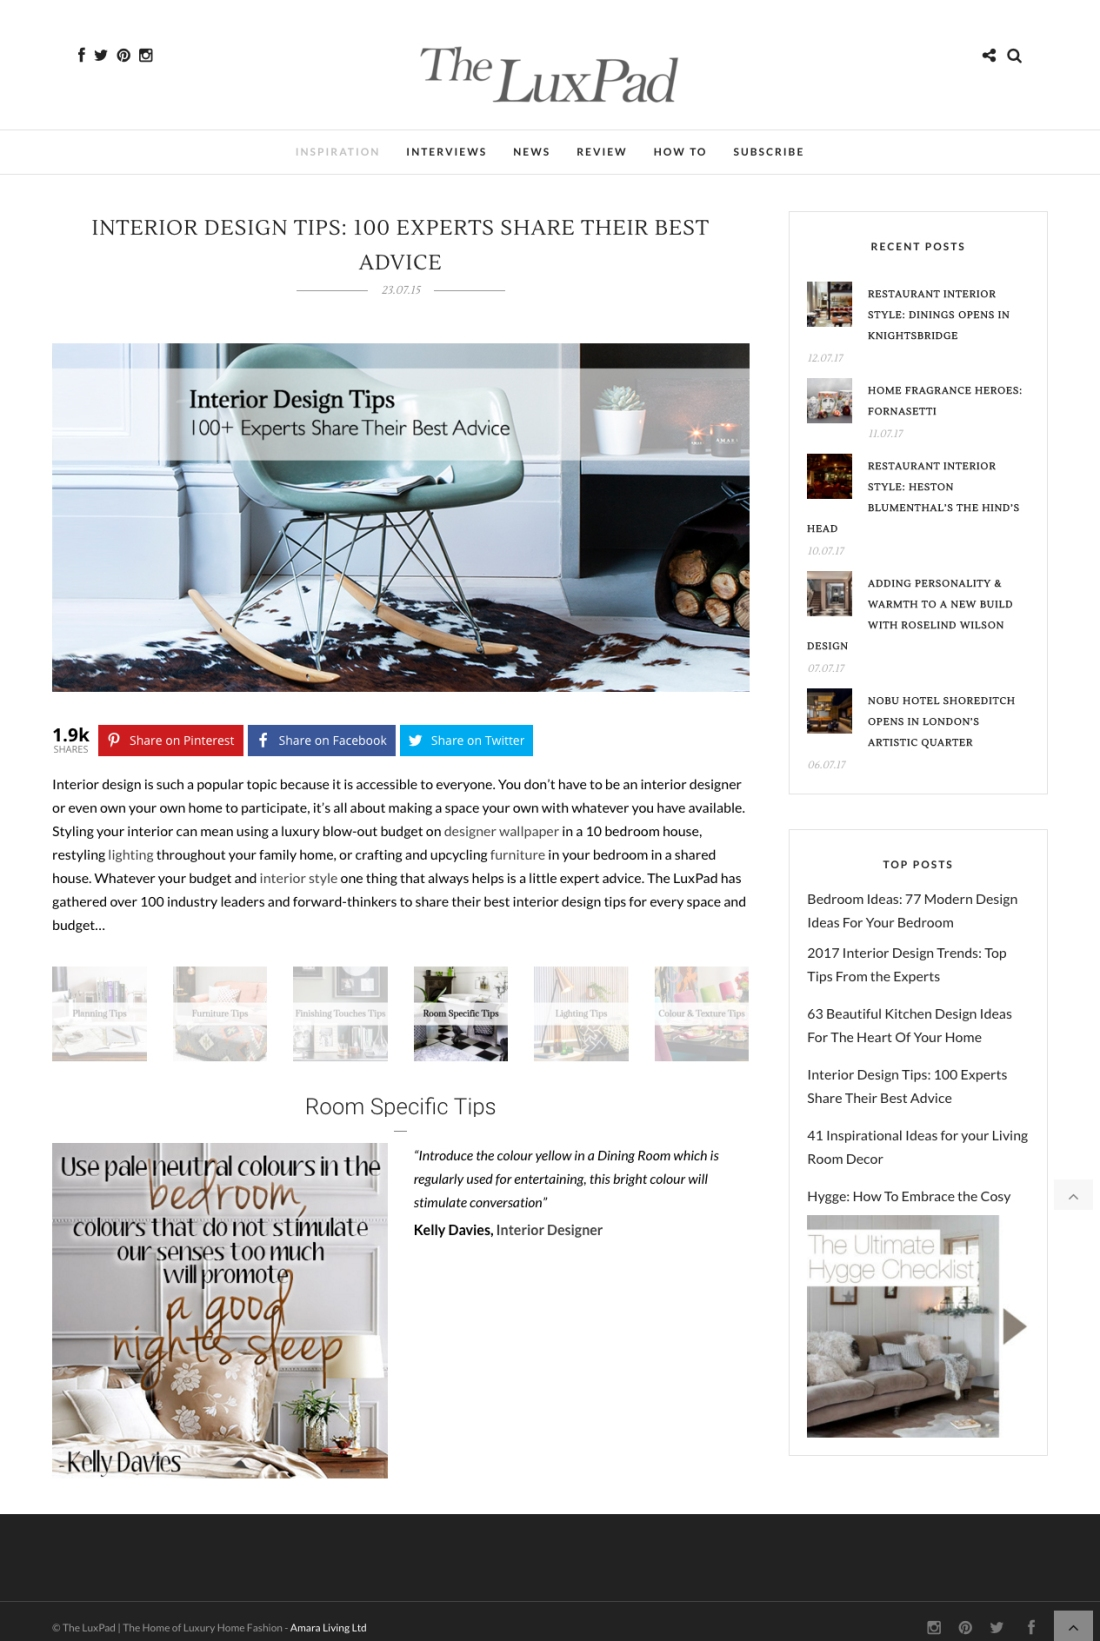 Interior Design Tips 100 Experts Share Their Best Advice FINAL